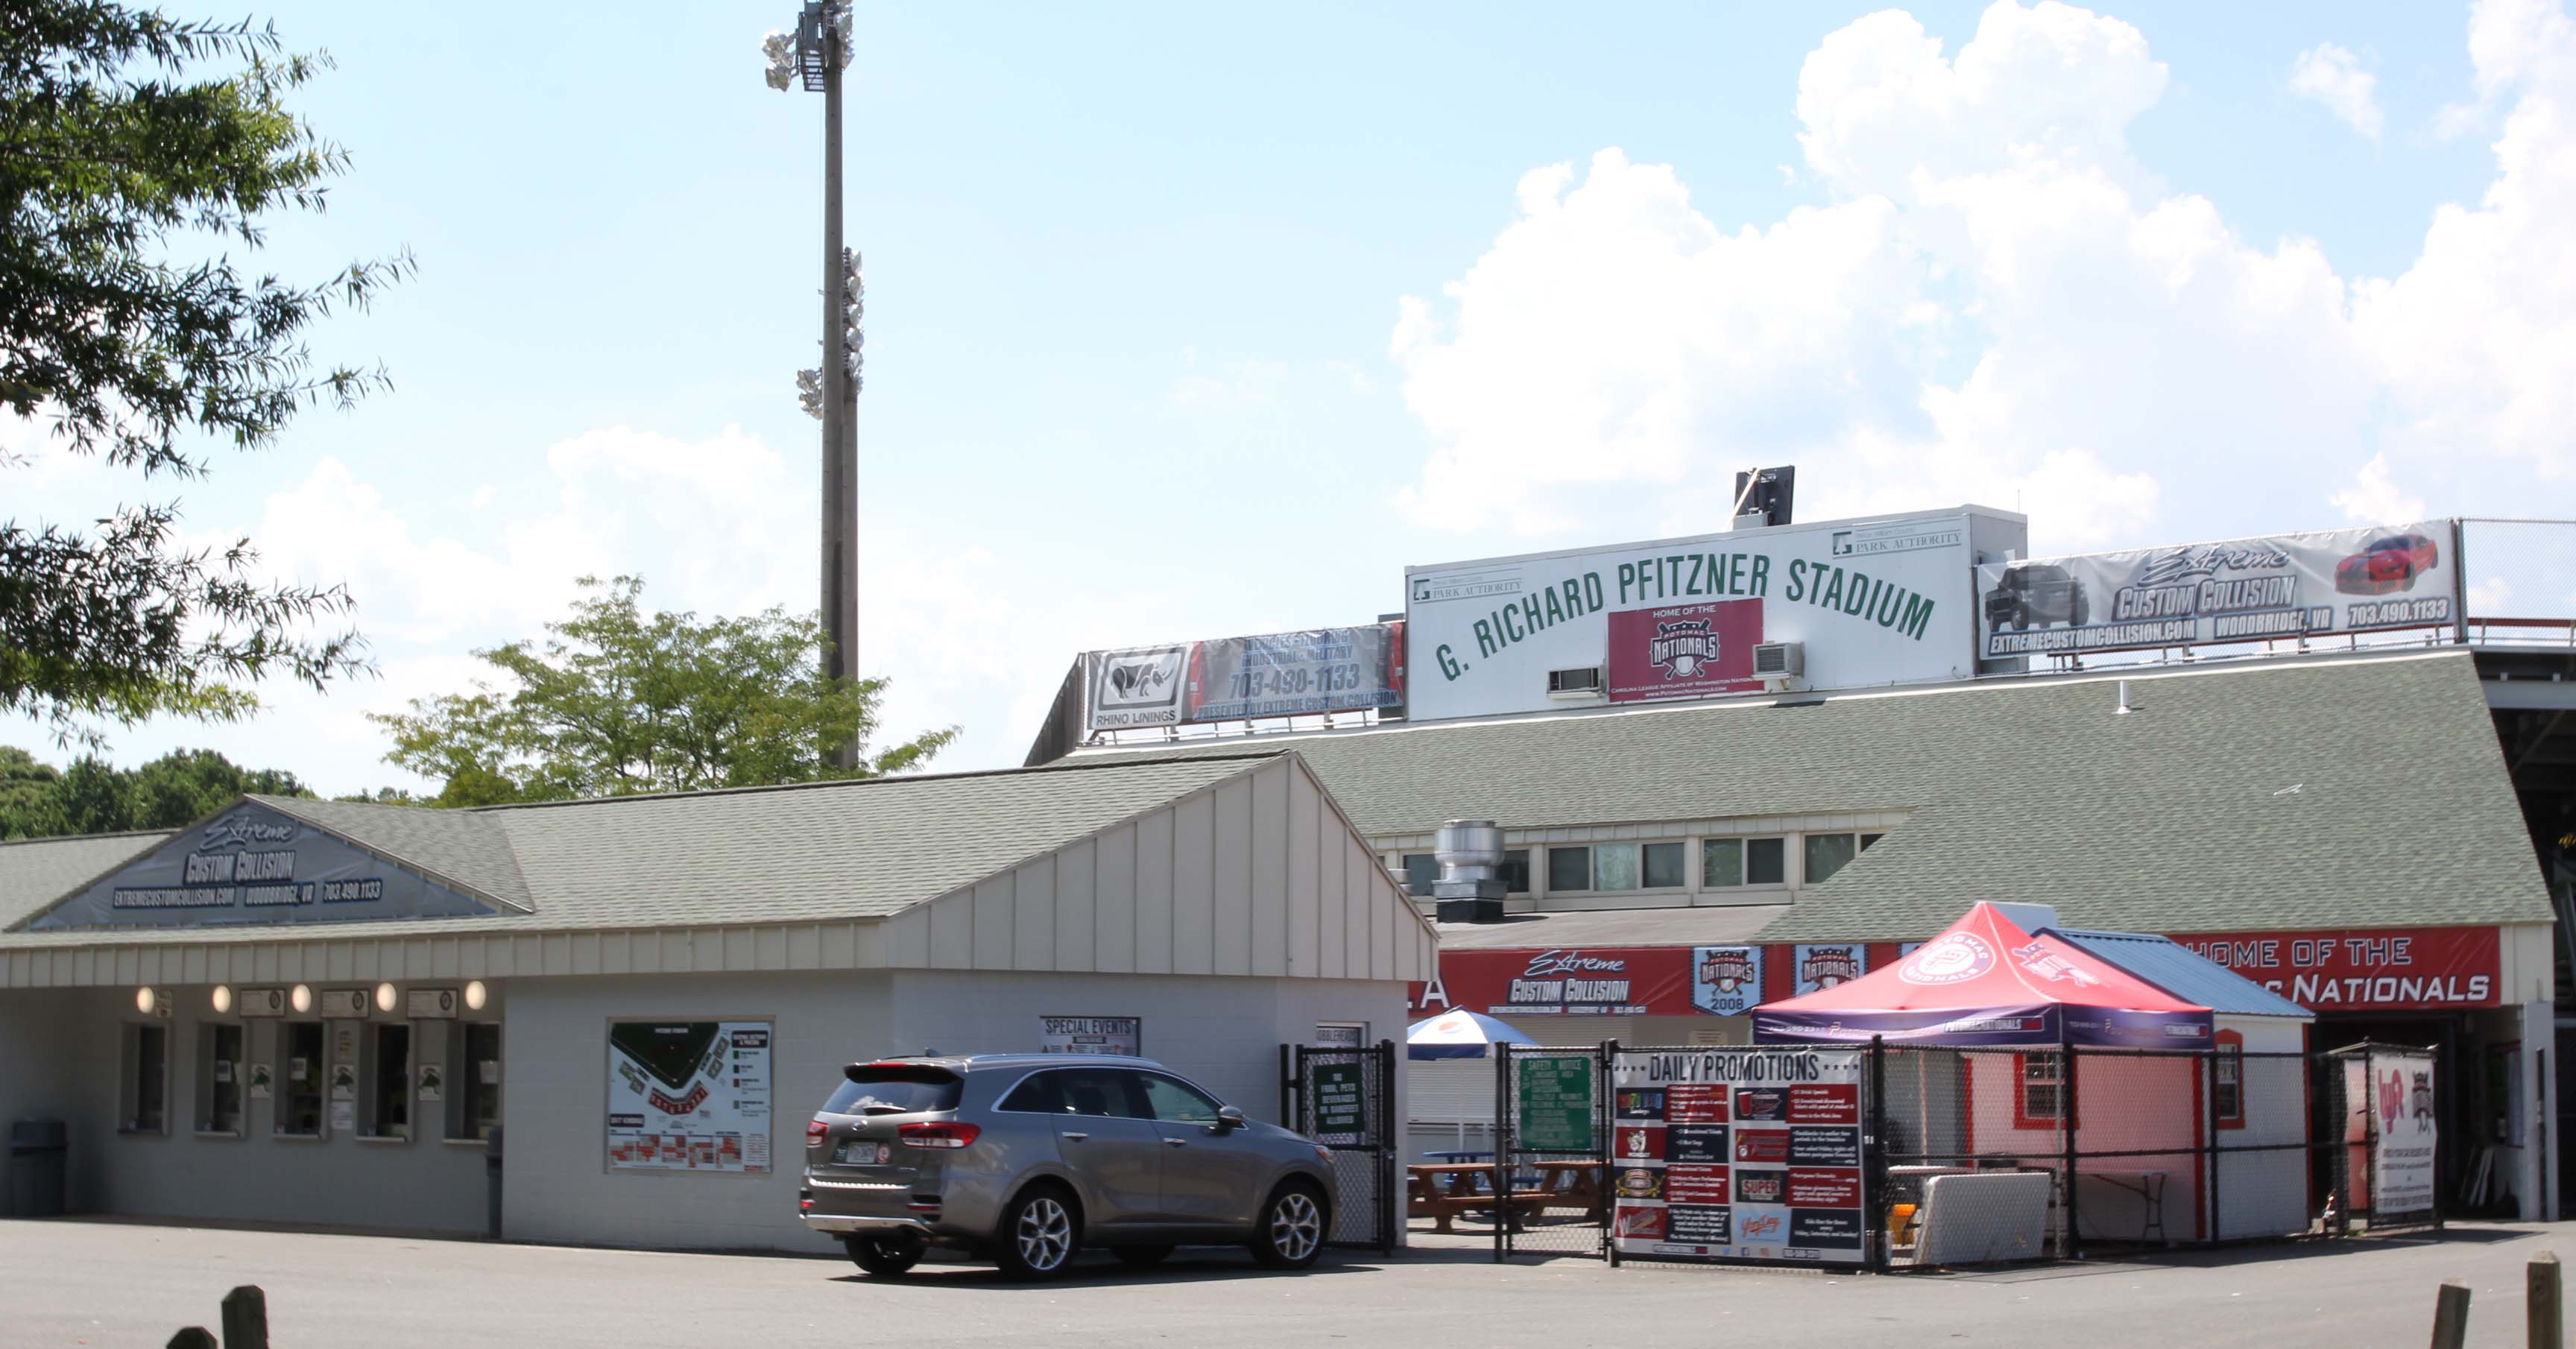 Pfitzner Stadium is home to the Class A Advanced Potomac Nationals. (MEDILL/Jenna West)